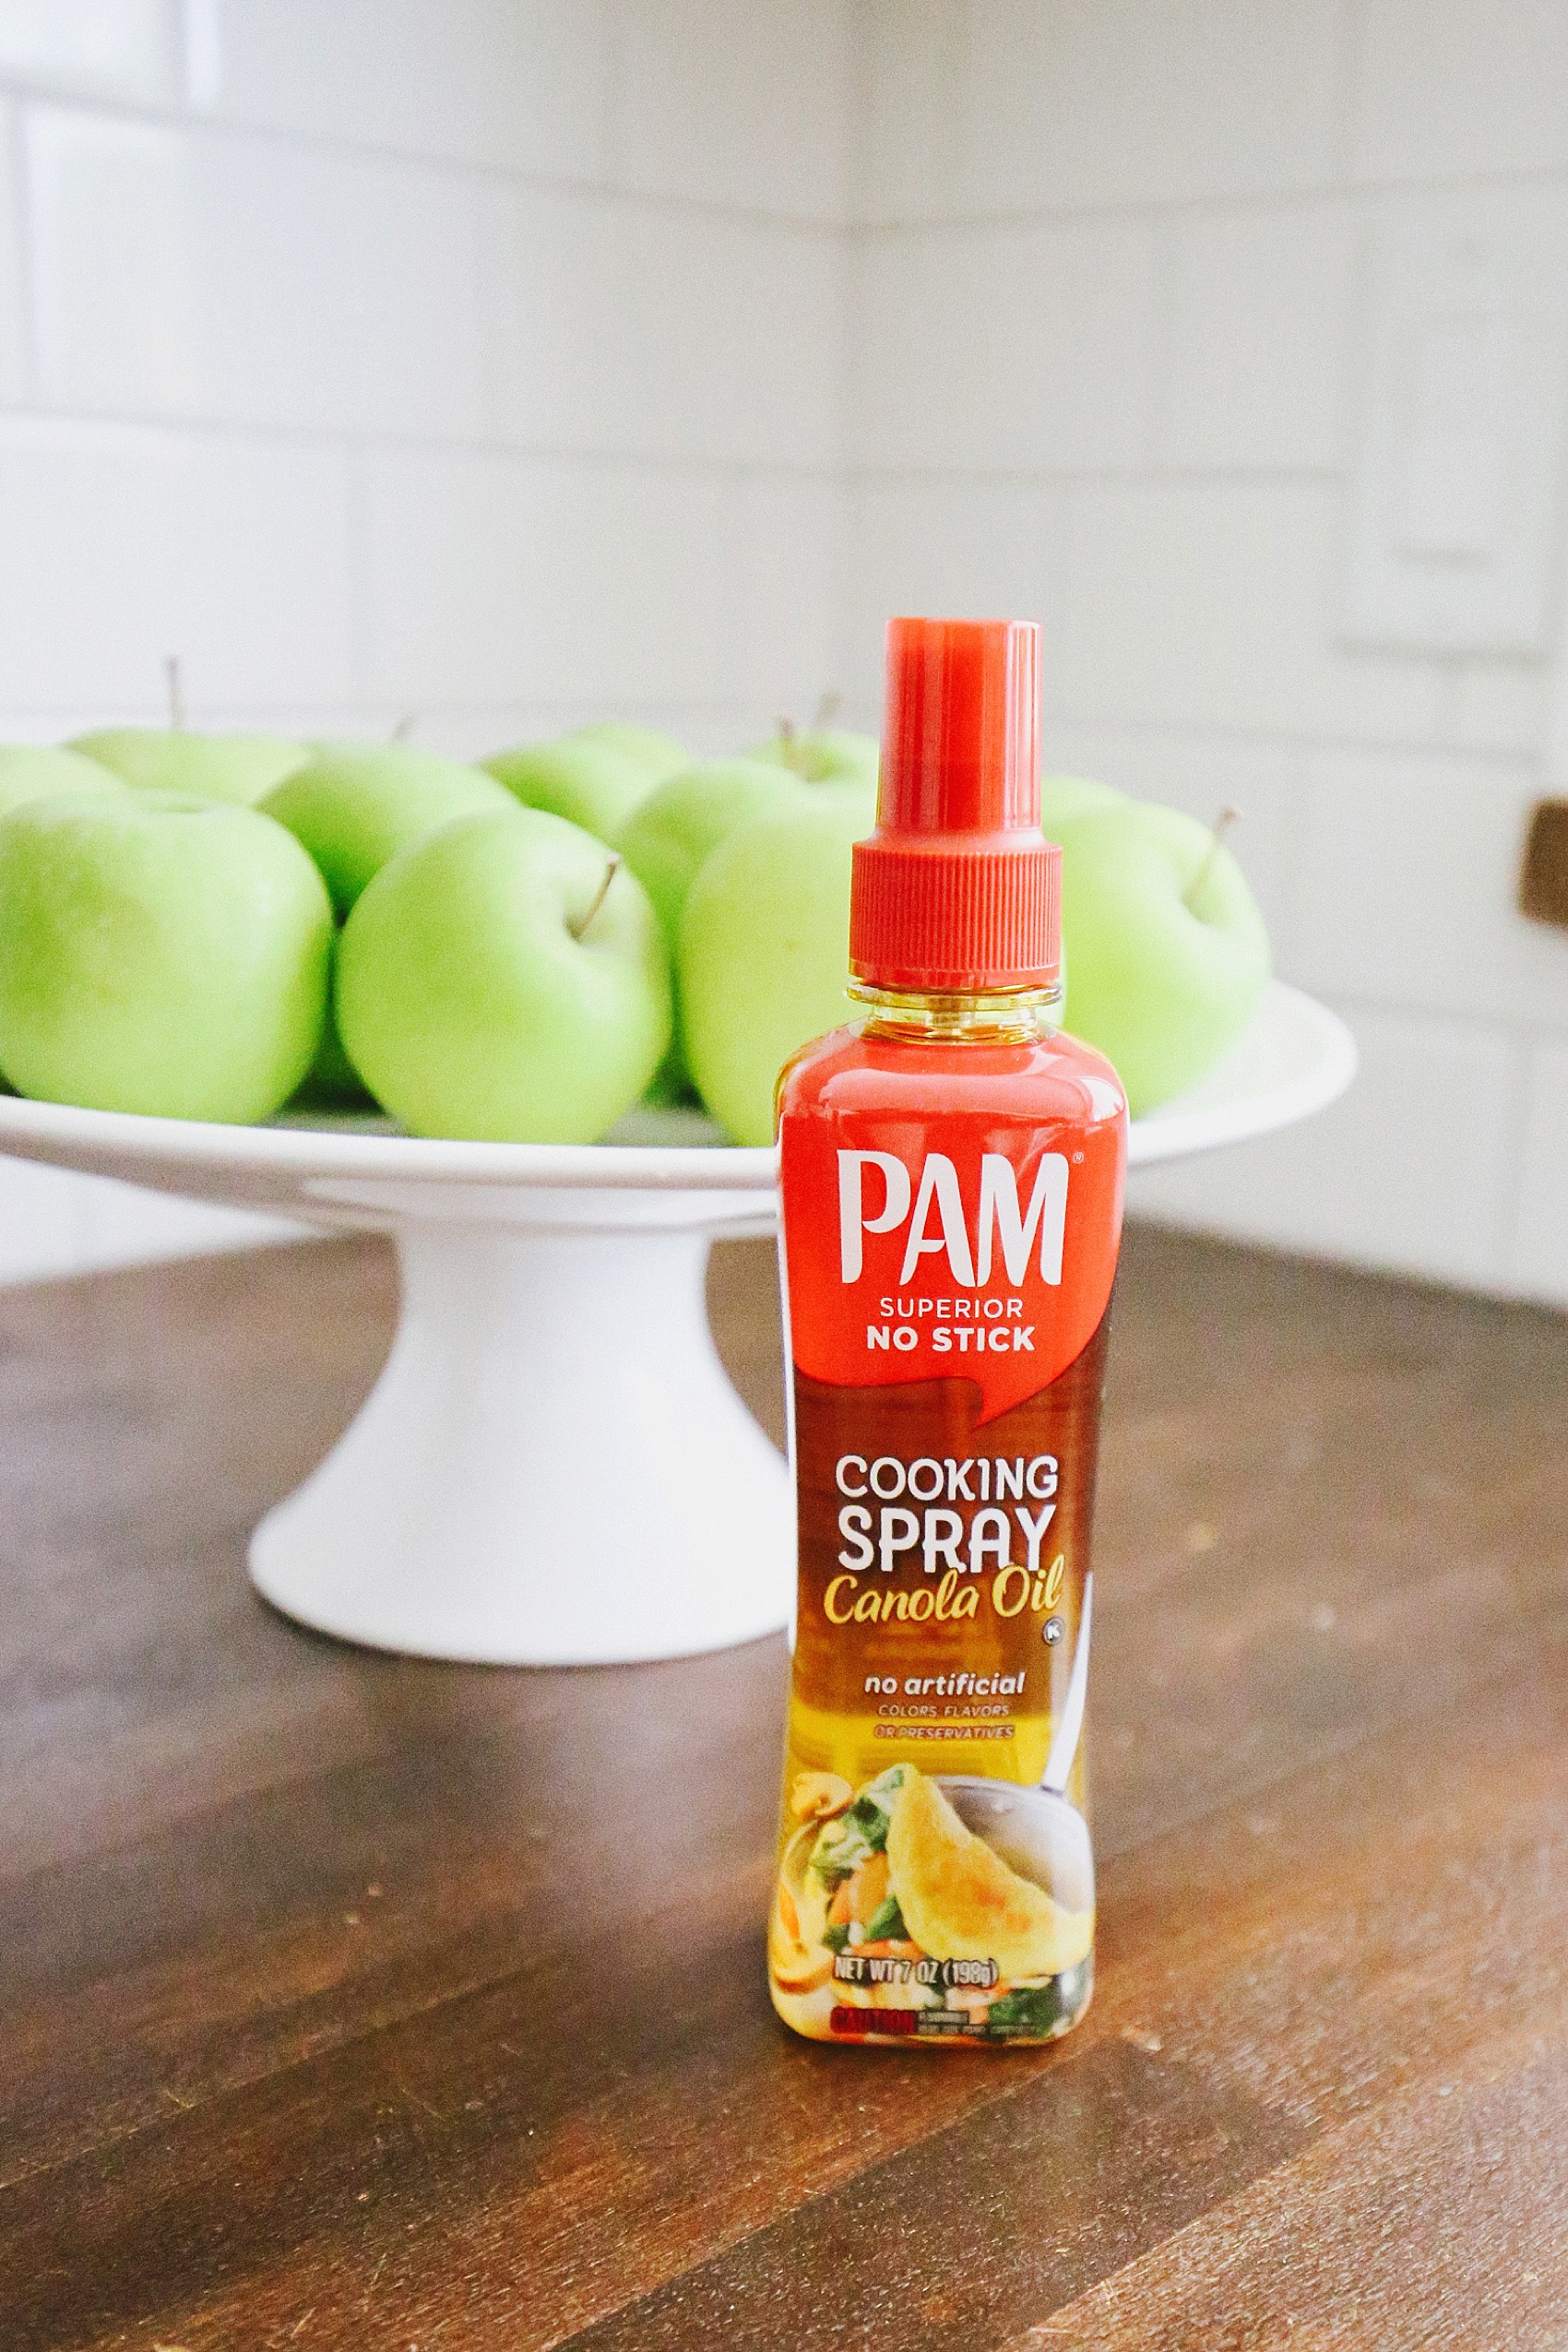 pam pump spray on kitchen countertop in front of green apples